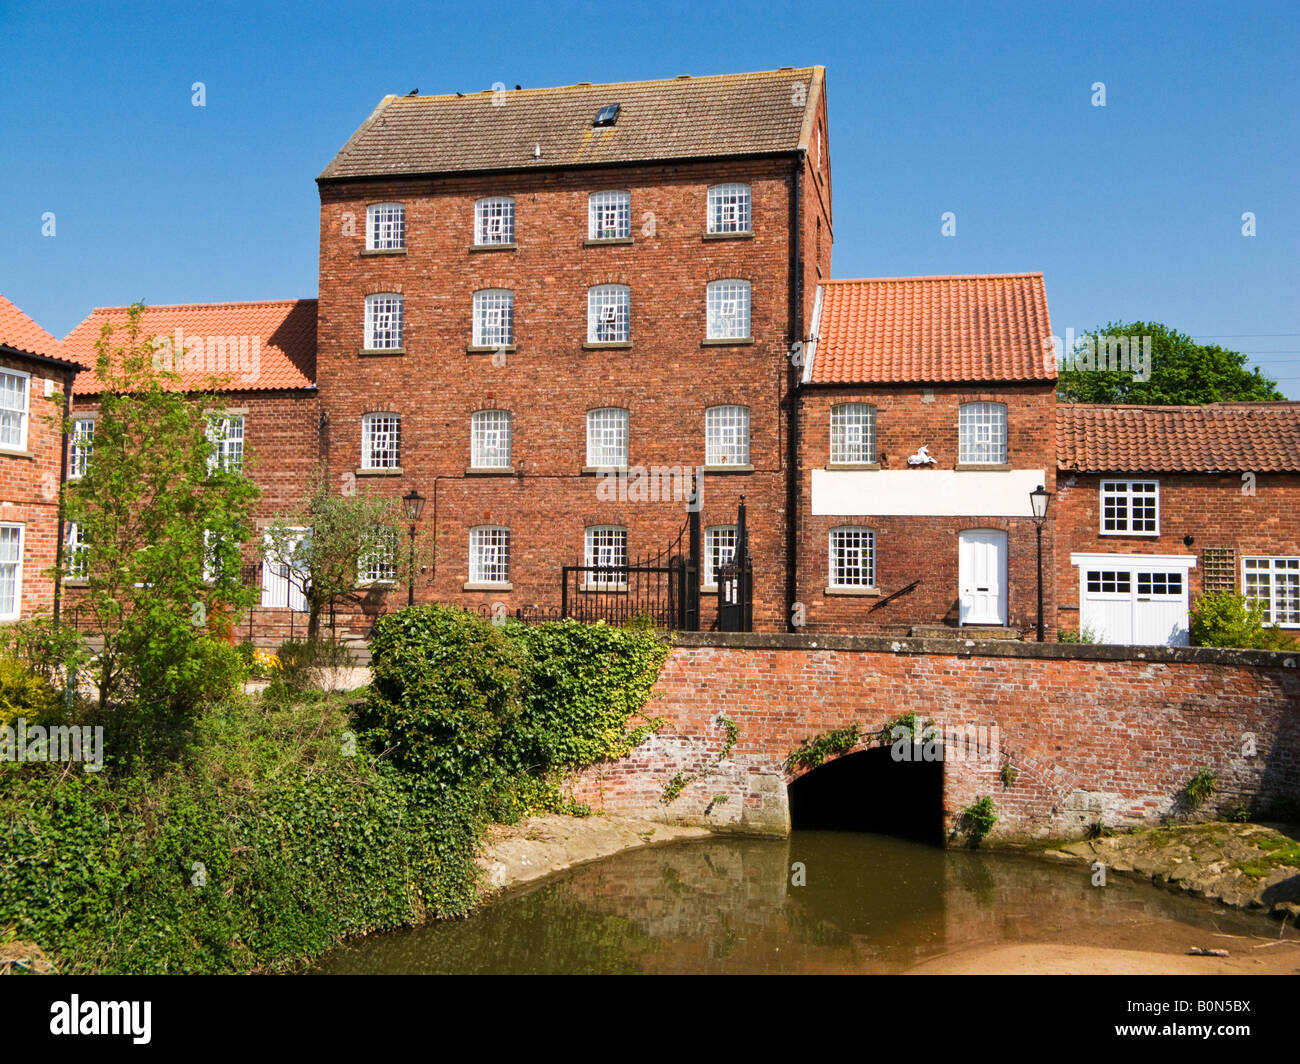 Victorian Church Mill on river Rase converted for housing and new development at Market Rasen, Lincolnshire, UK - Stock Image